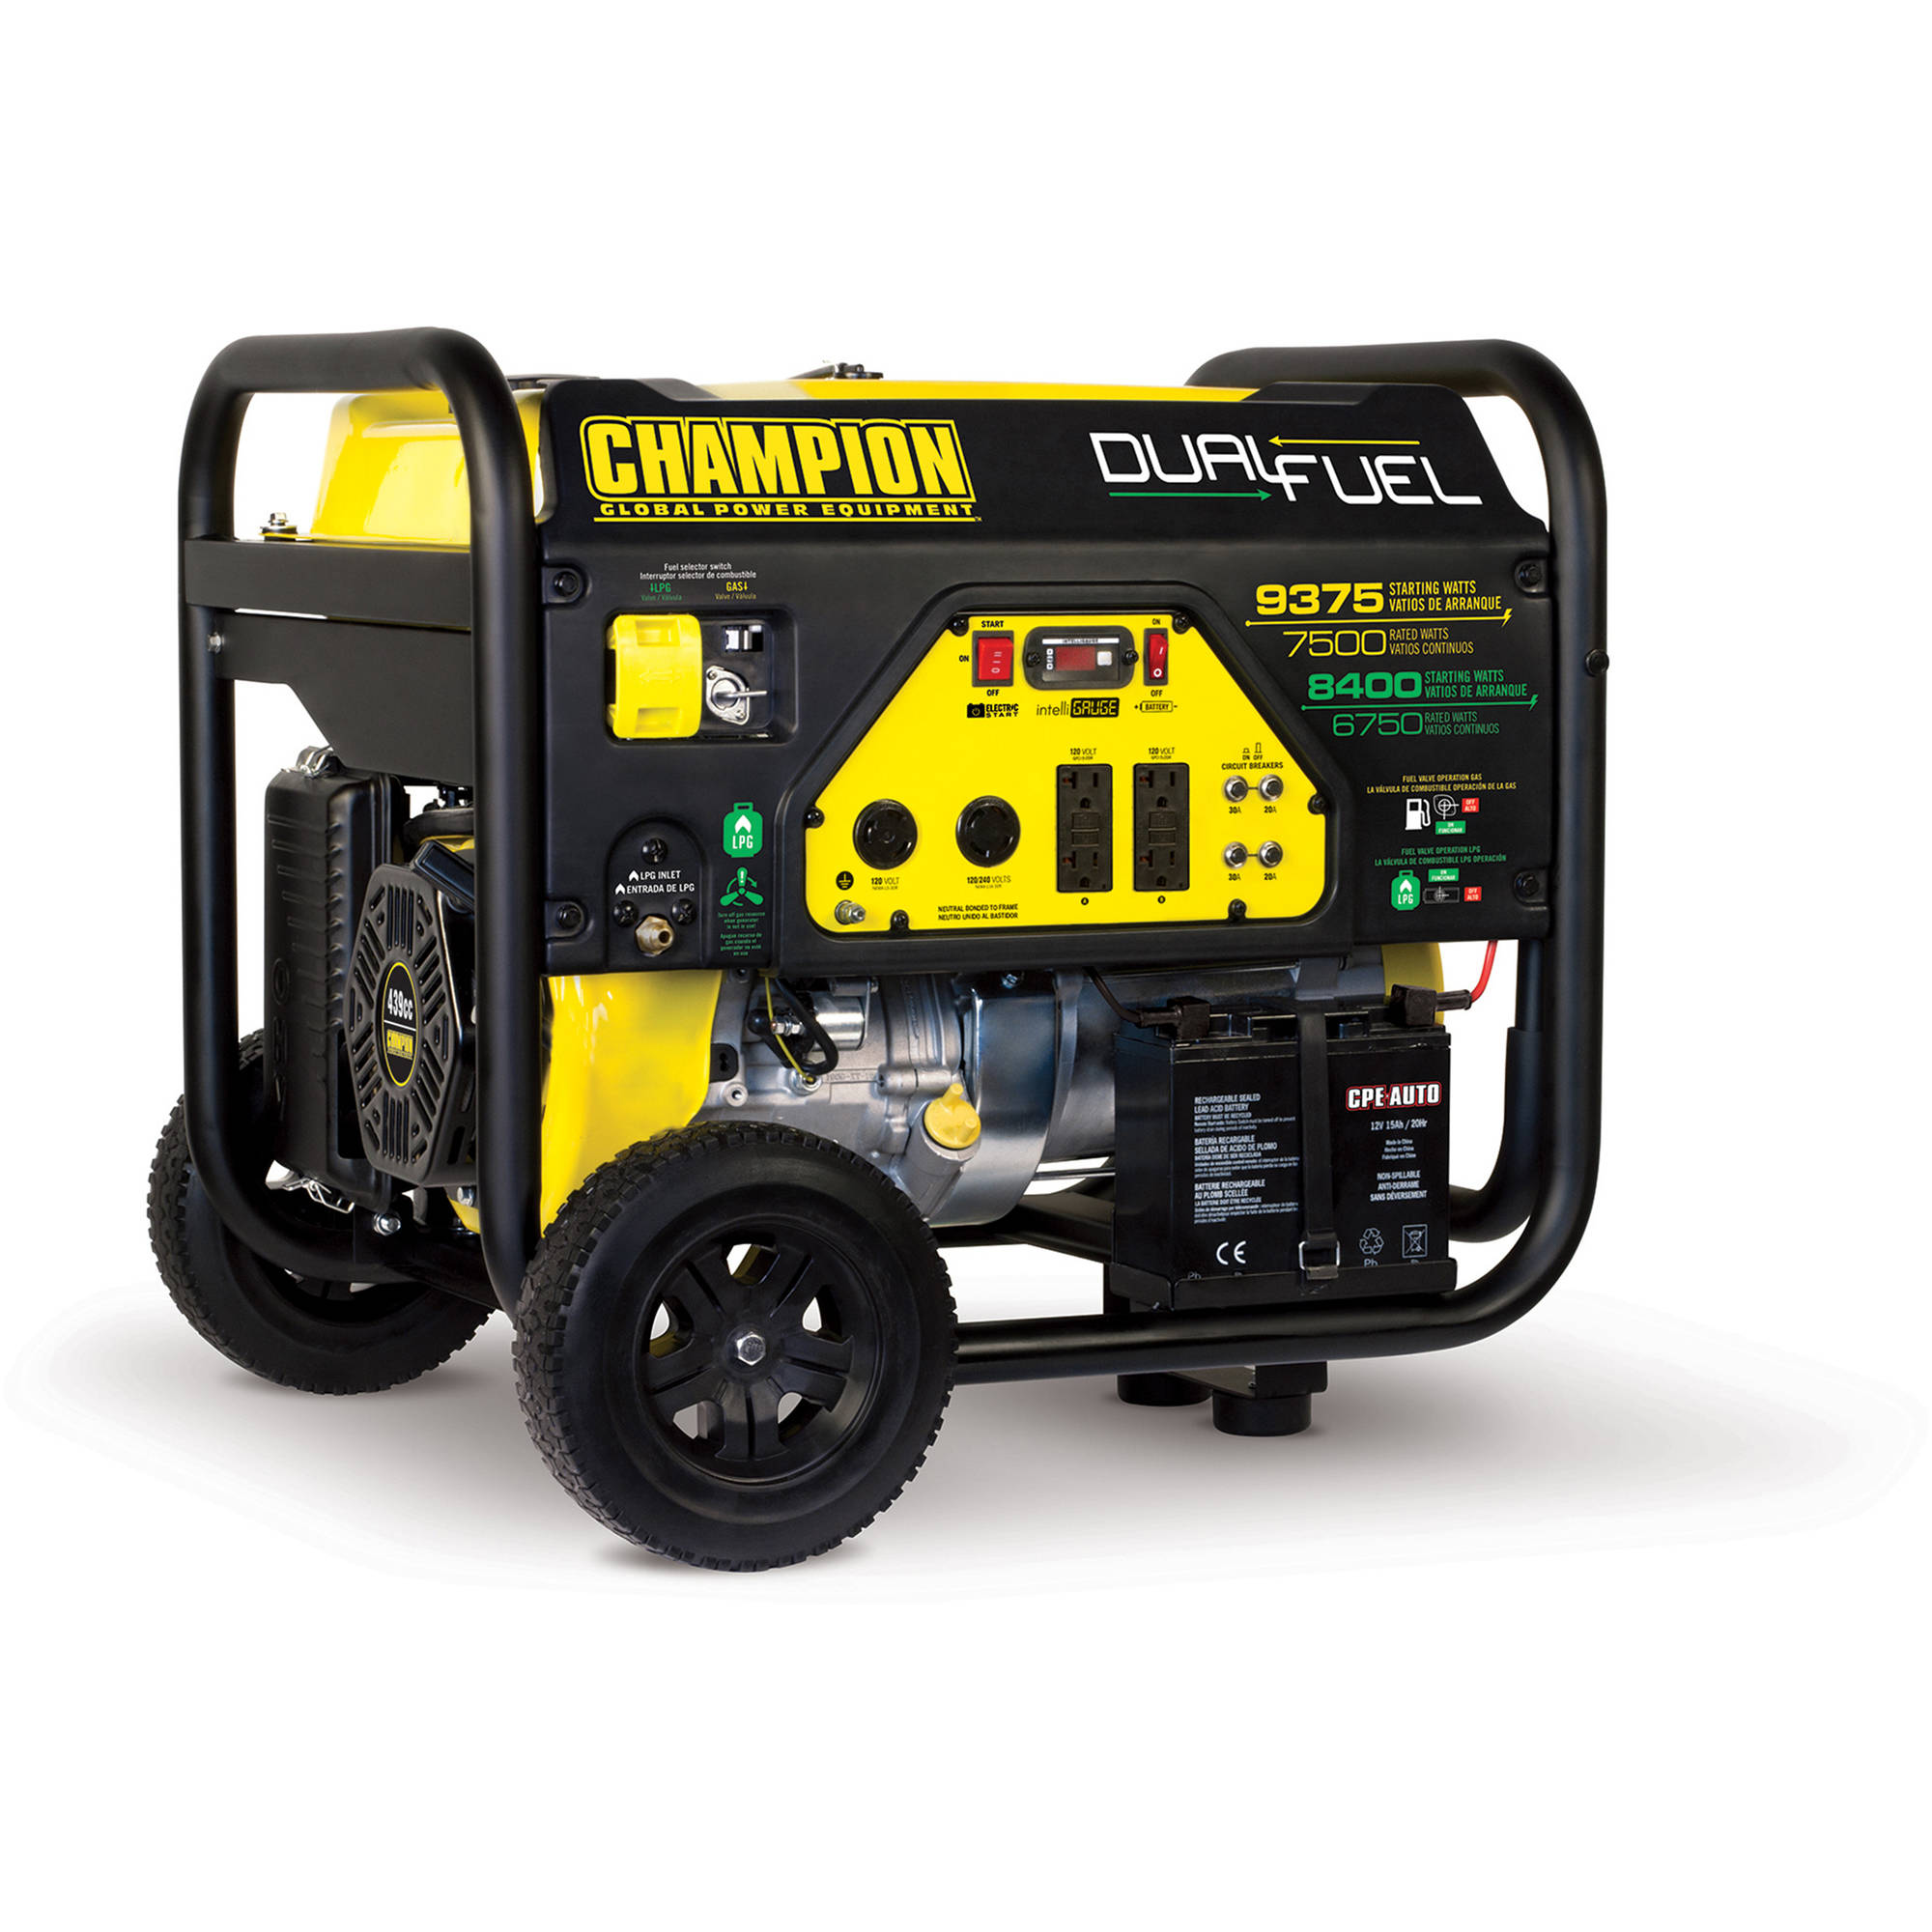 Champion 9375 Watt Dual Fuel Portable Generator Walmart